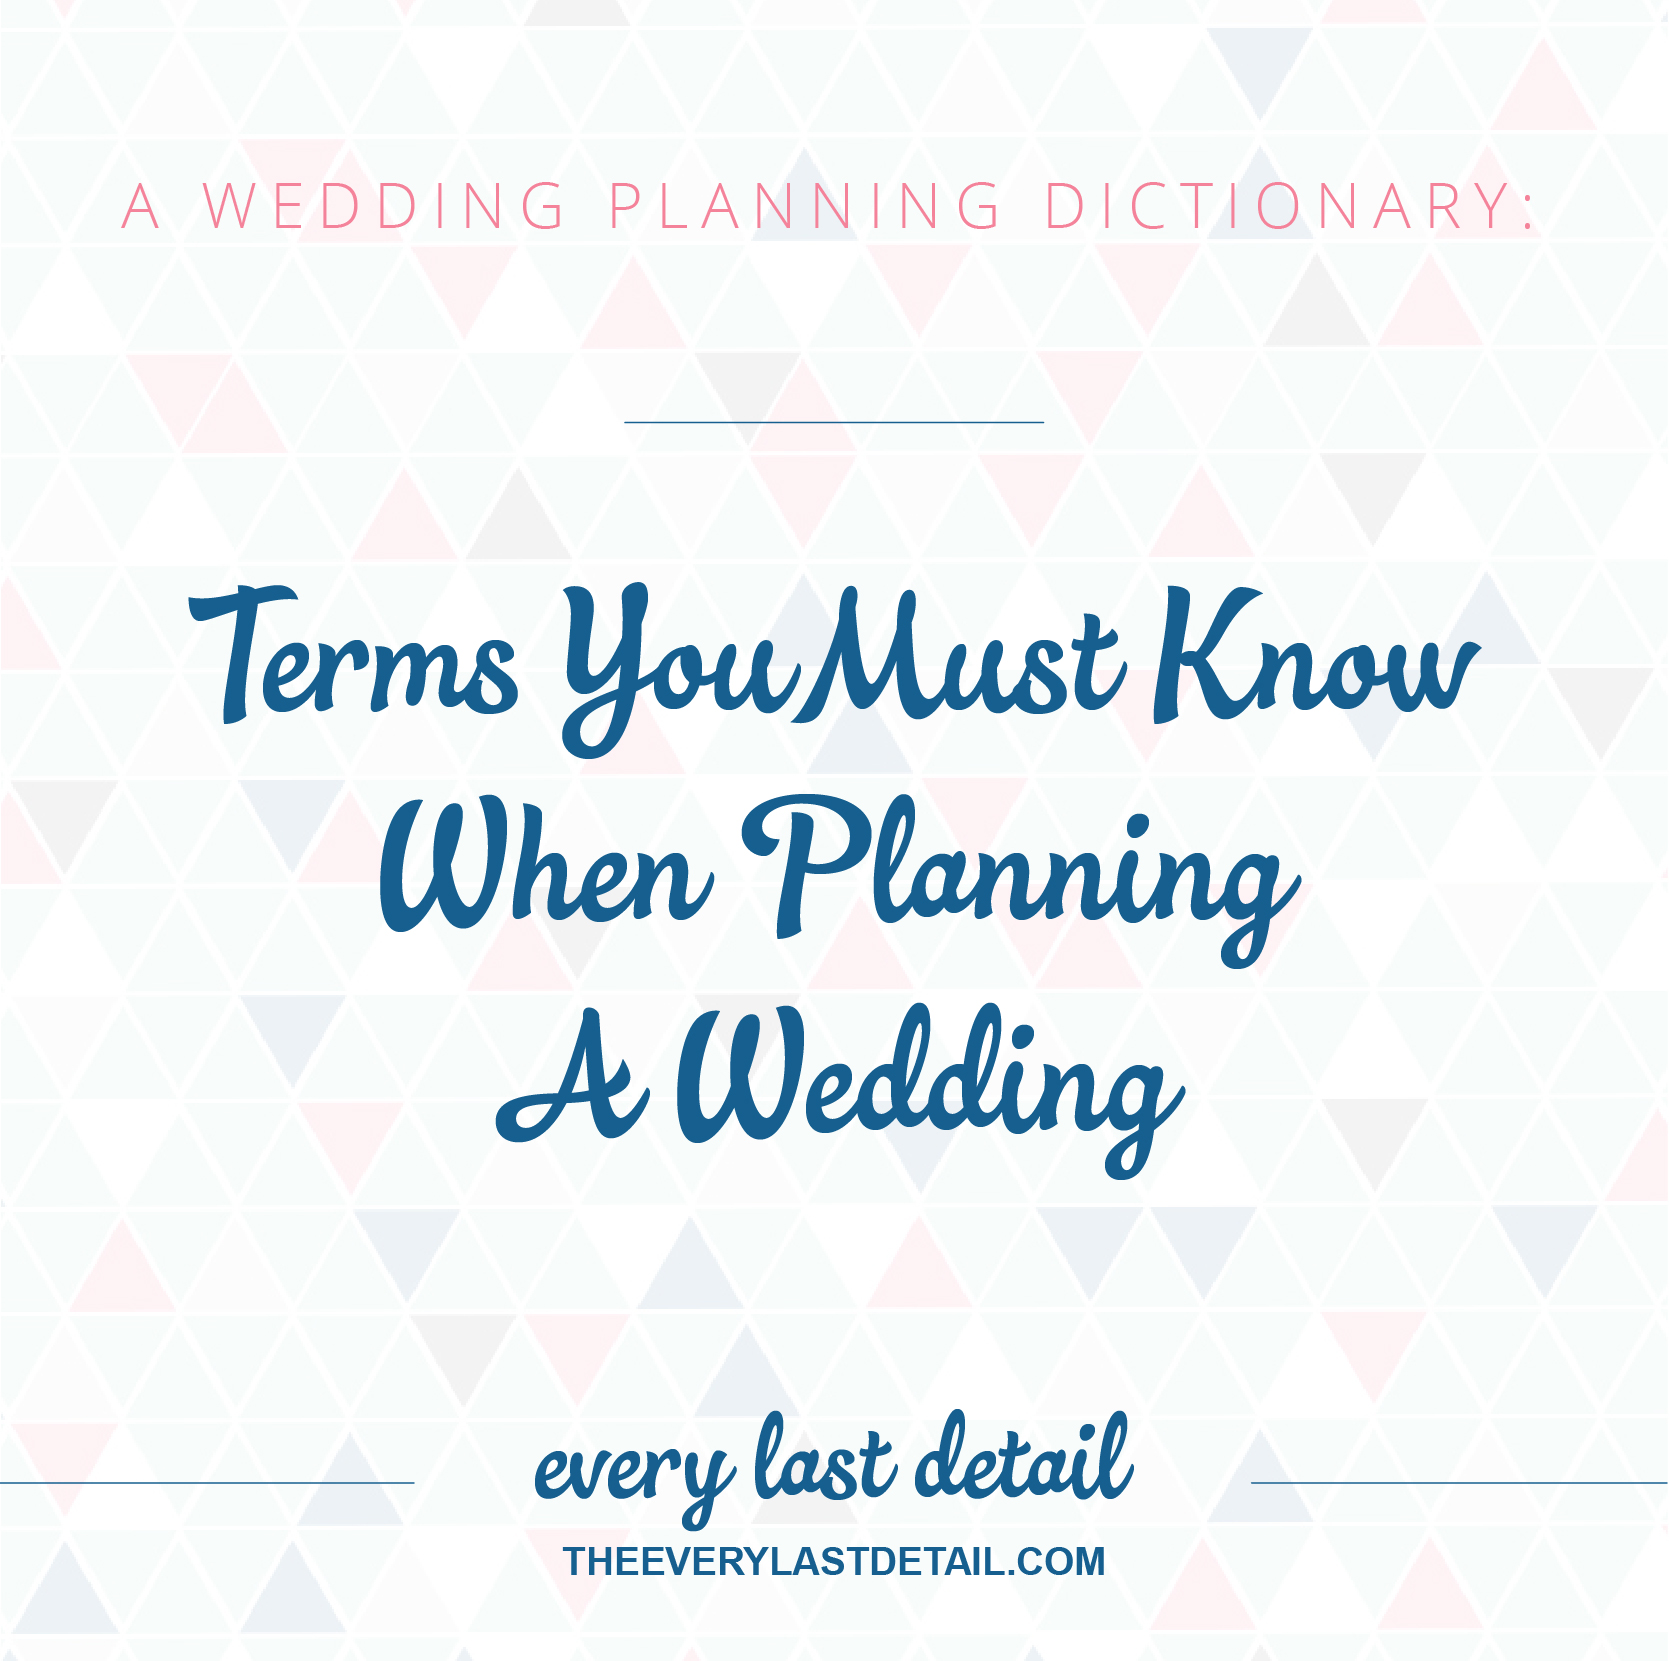 A Wedding Planning Dictionary: Terms You Must Know When Planning A ...